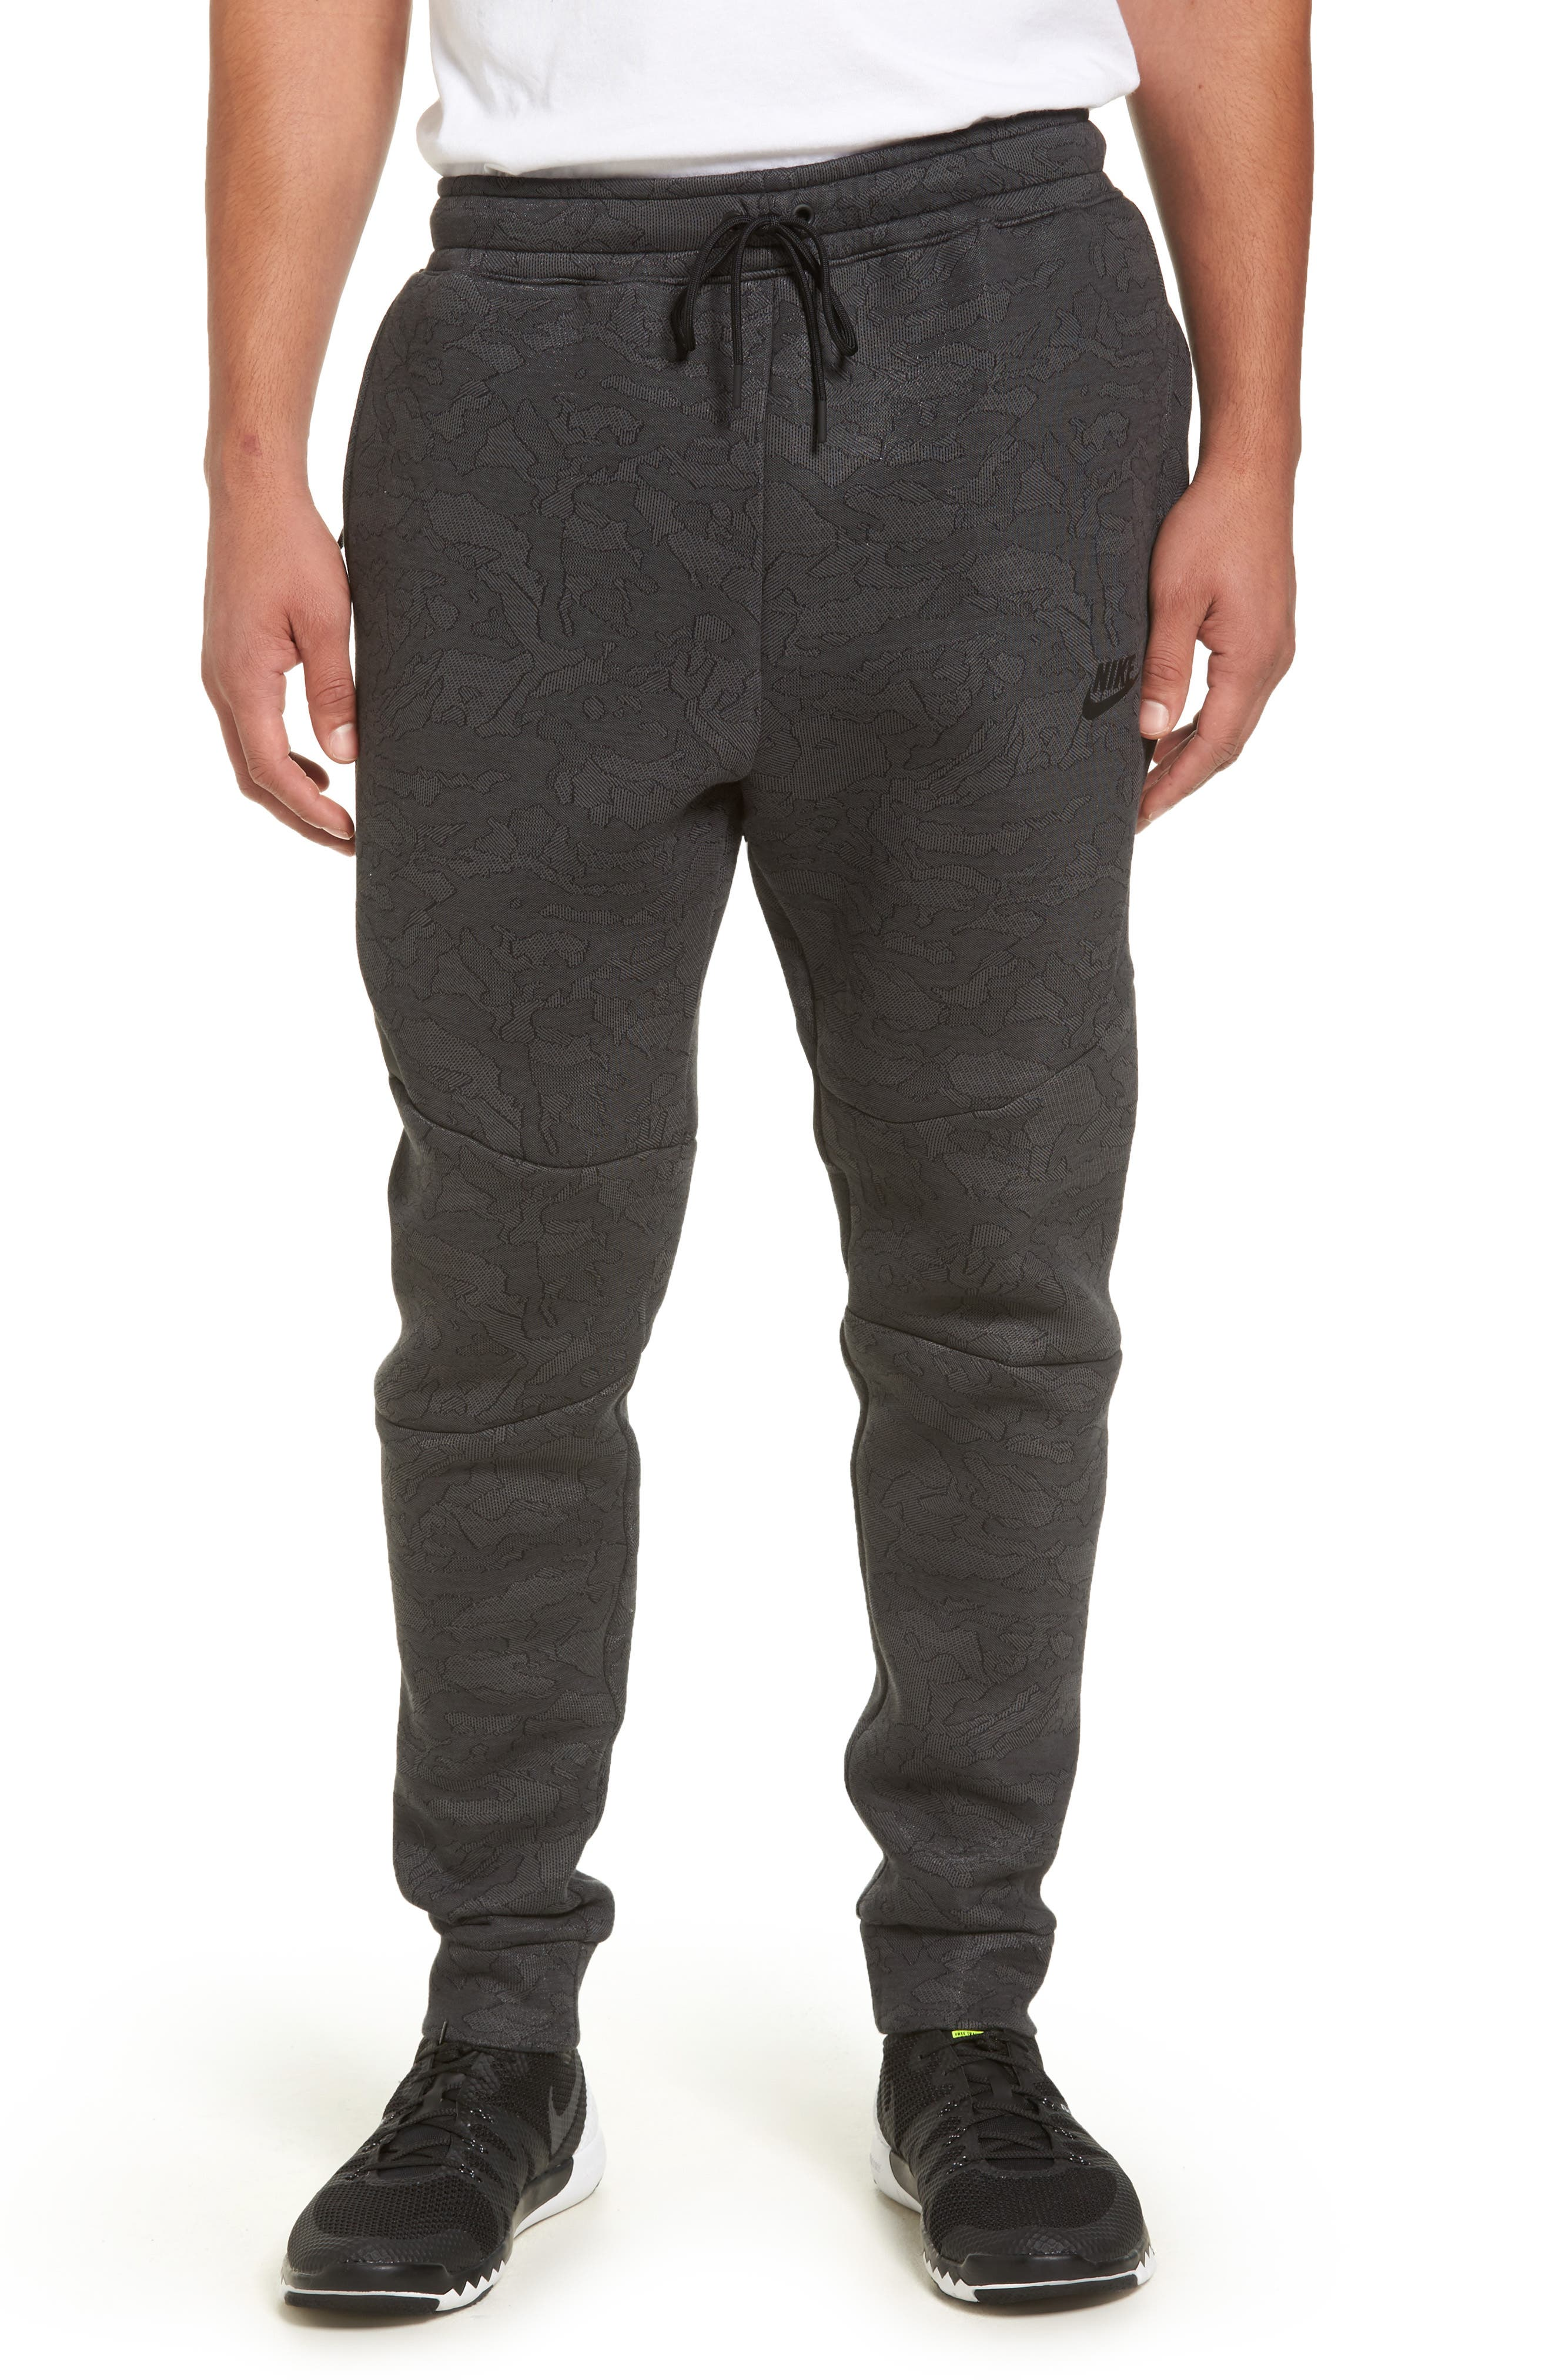 Tech Fleece Pants,                         Main,                         color, Midnight Fog/ Black